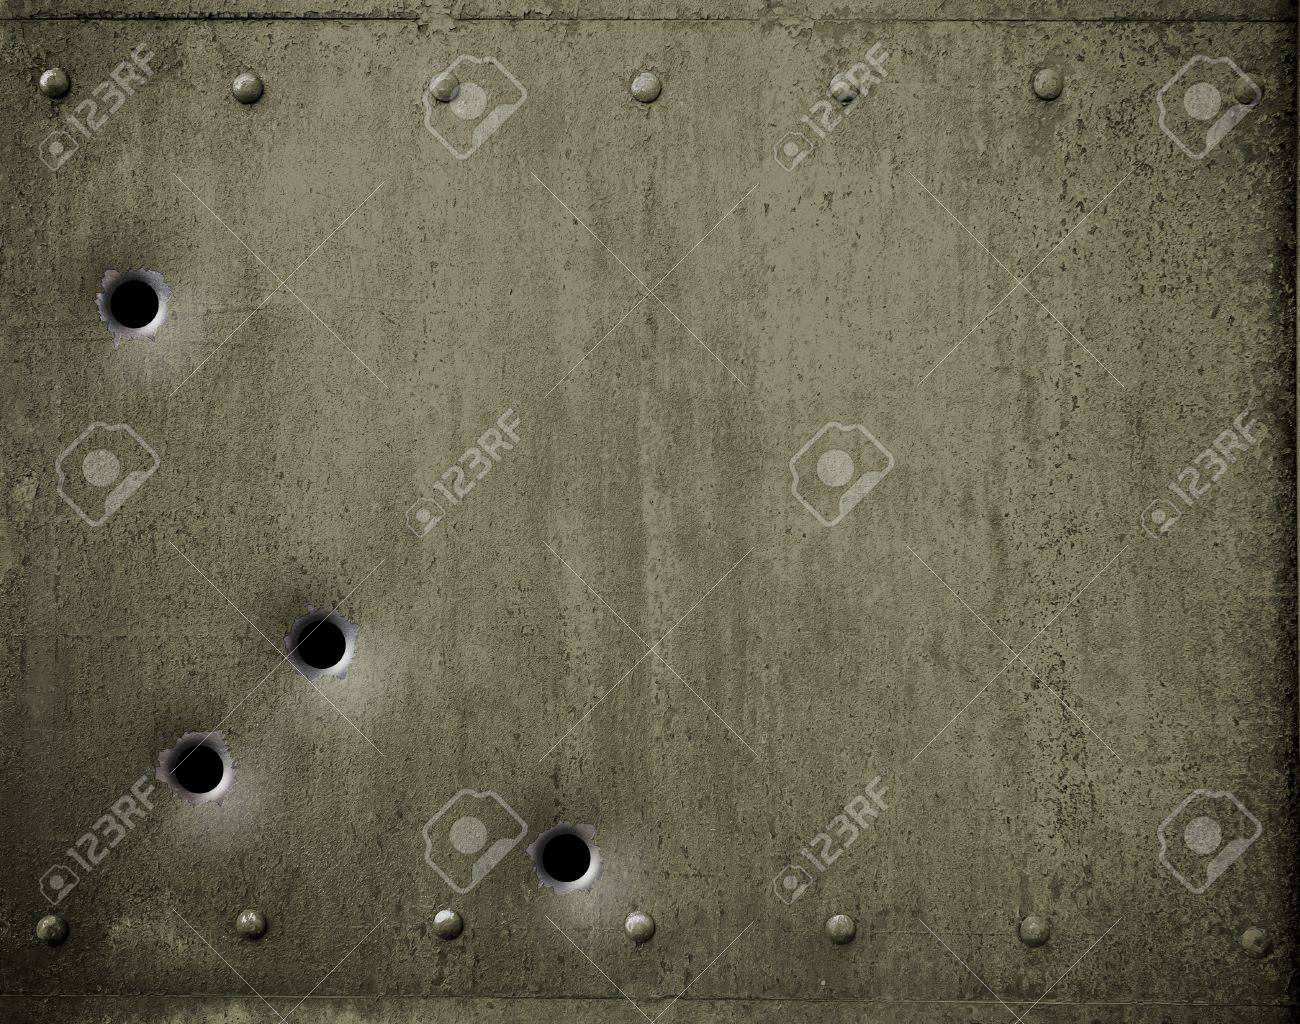 Army Metal Armor With Bullet Holes Background